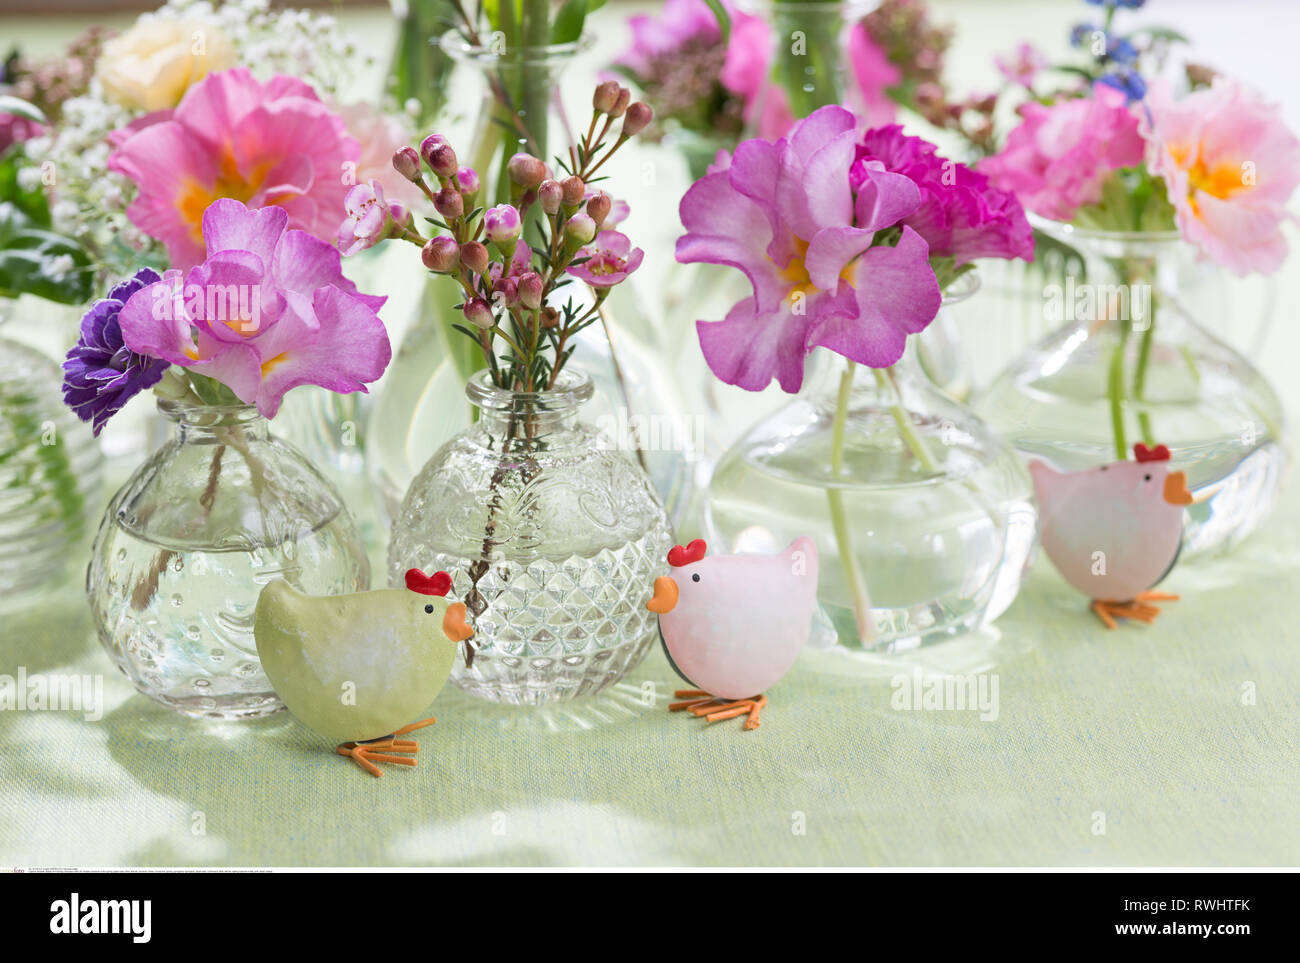 botany, blossom in the spring, glass vase, s, Caution! For Greetingcard-Use / Postcard-Use In German Speaking Countries Certain Restrictions May Apply - Stock Image